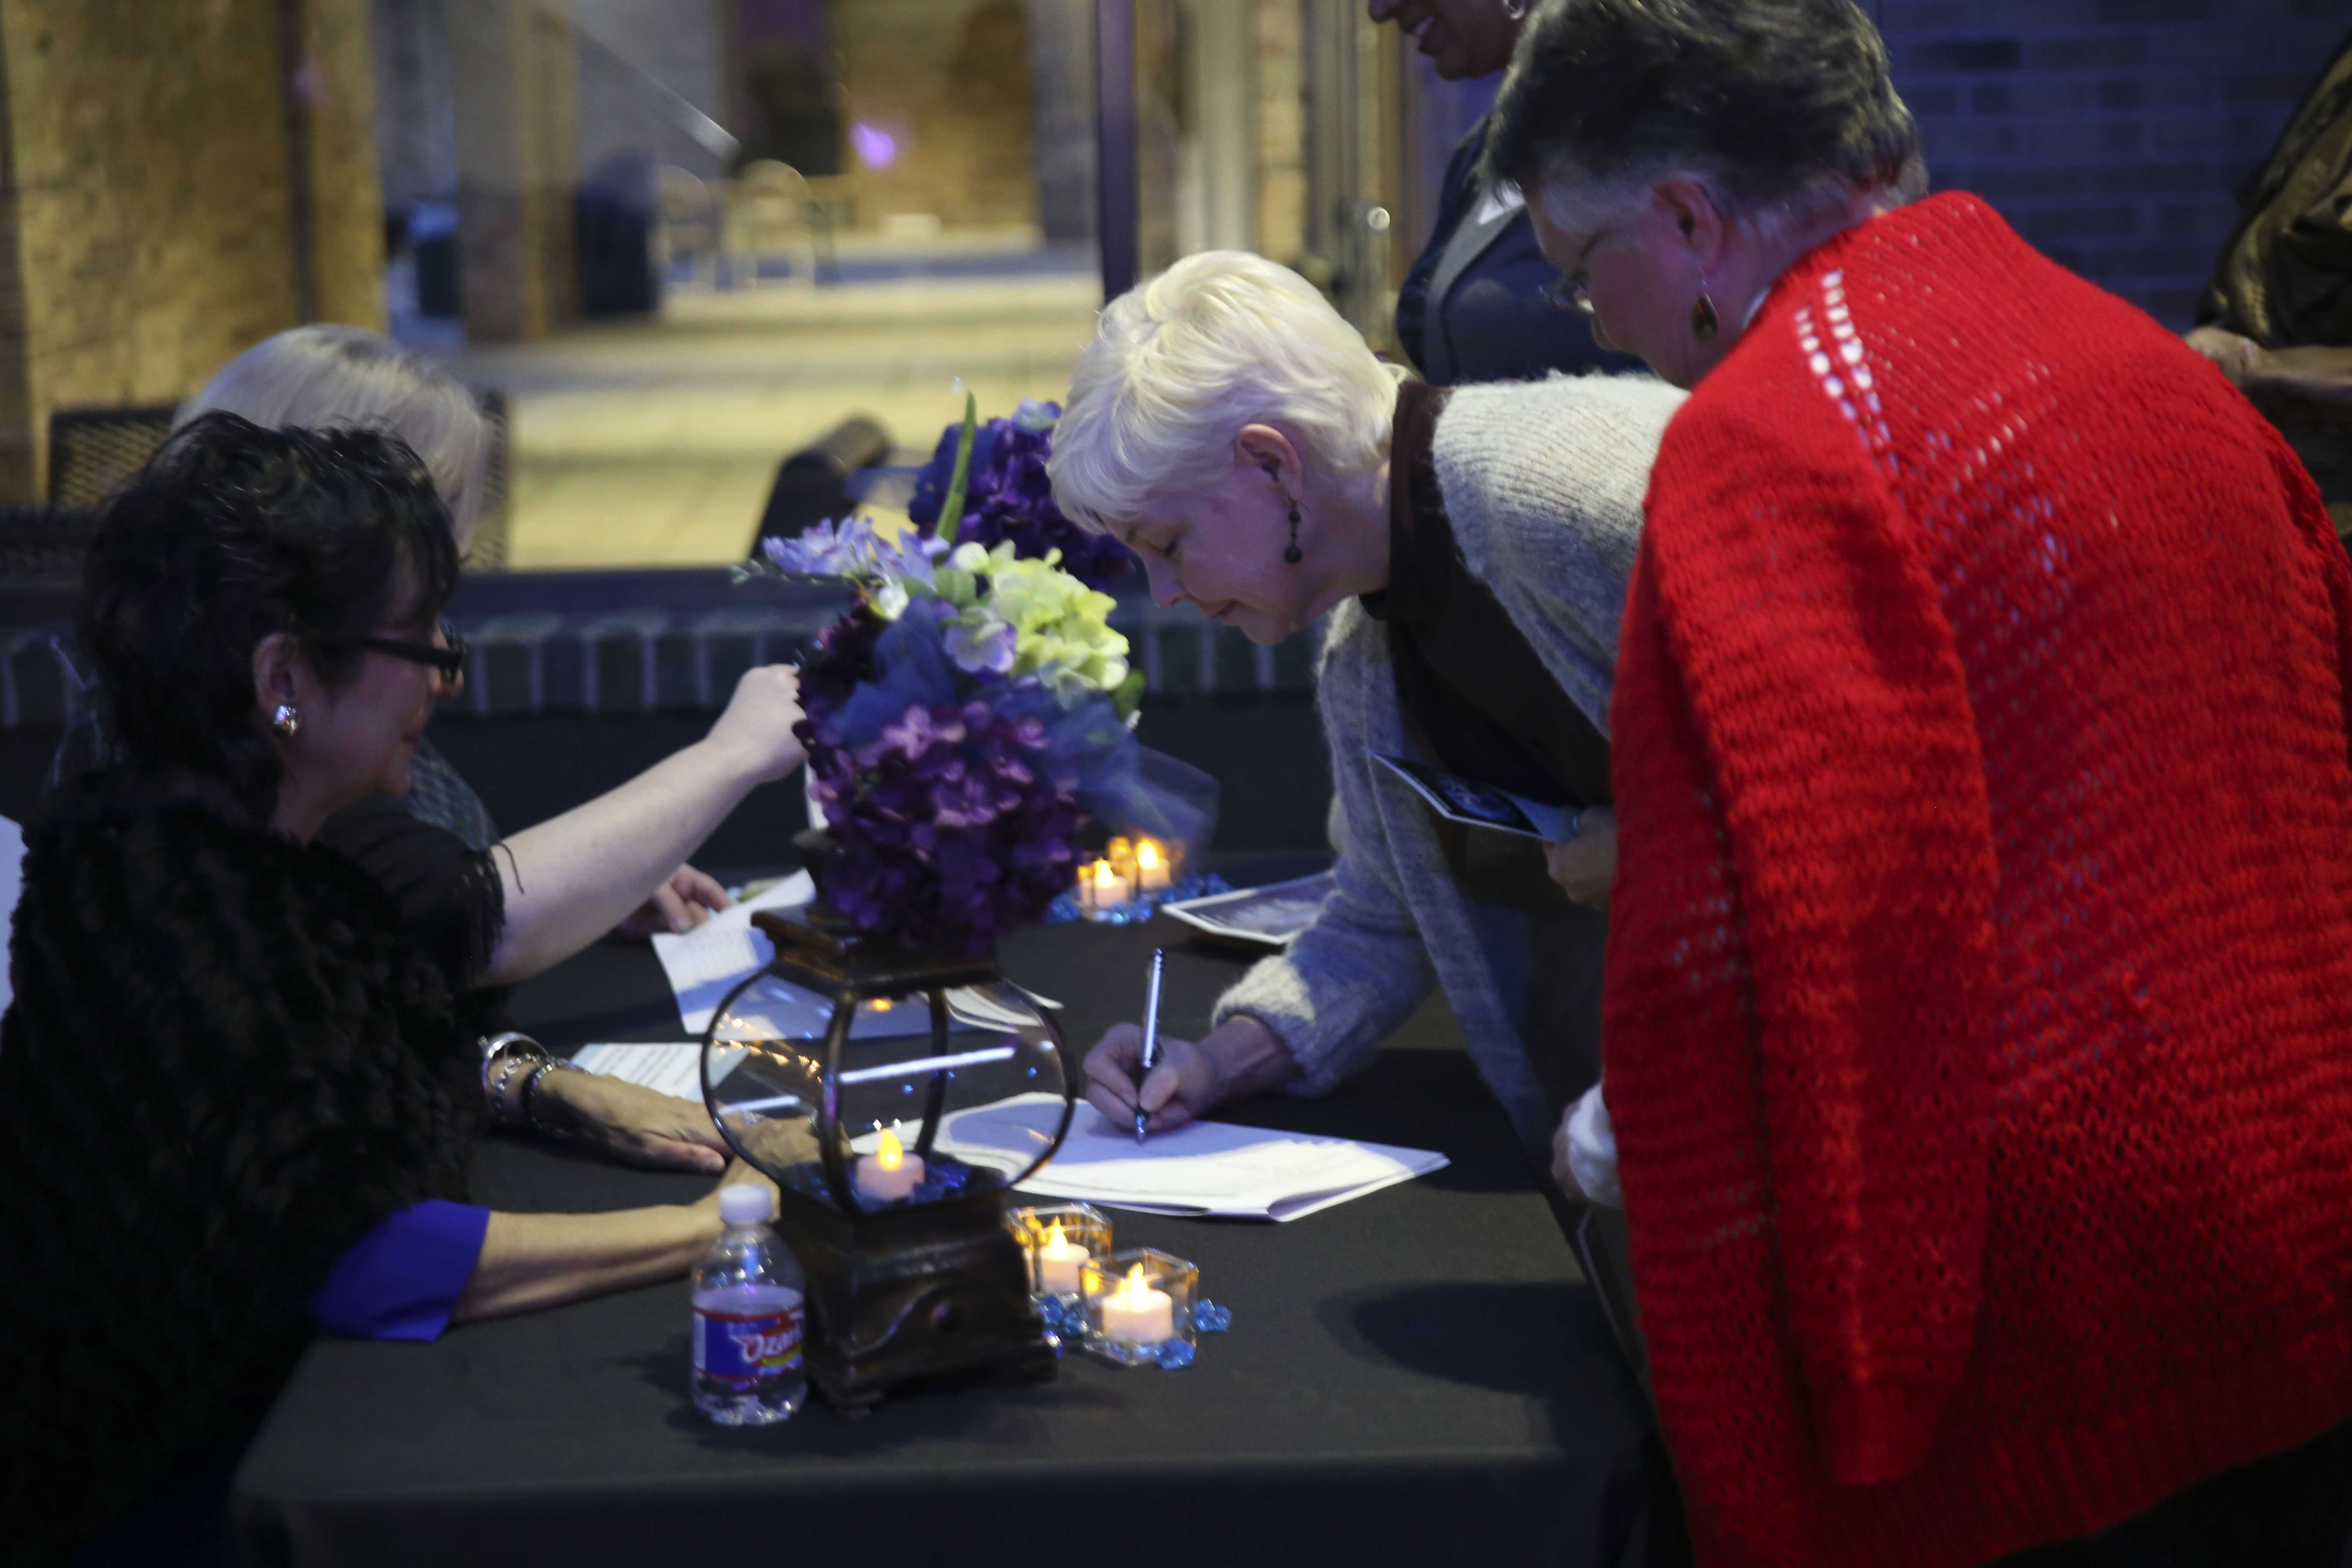 Guests sign in at the beginning of the event